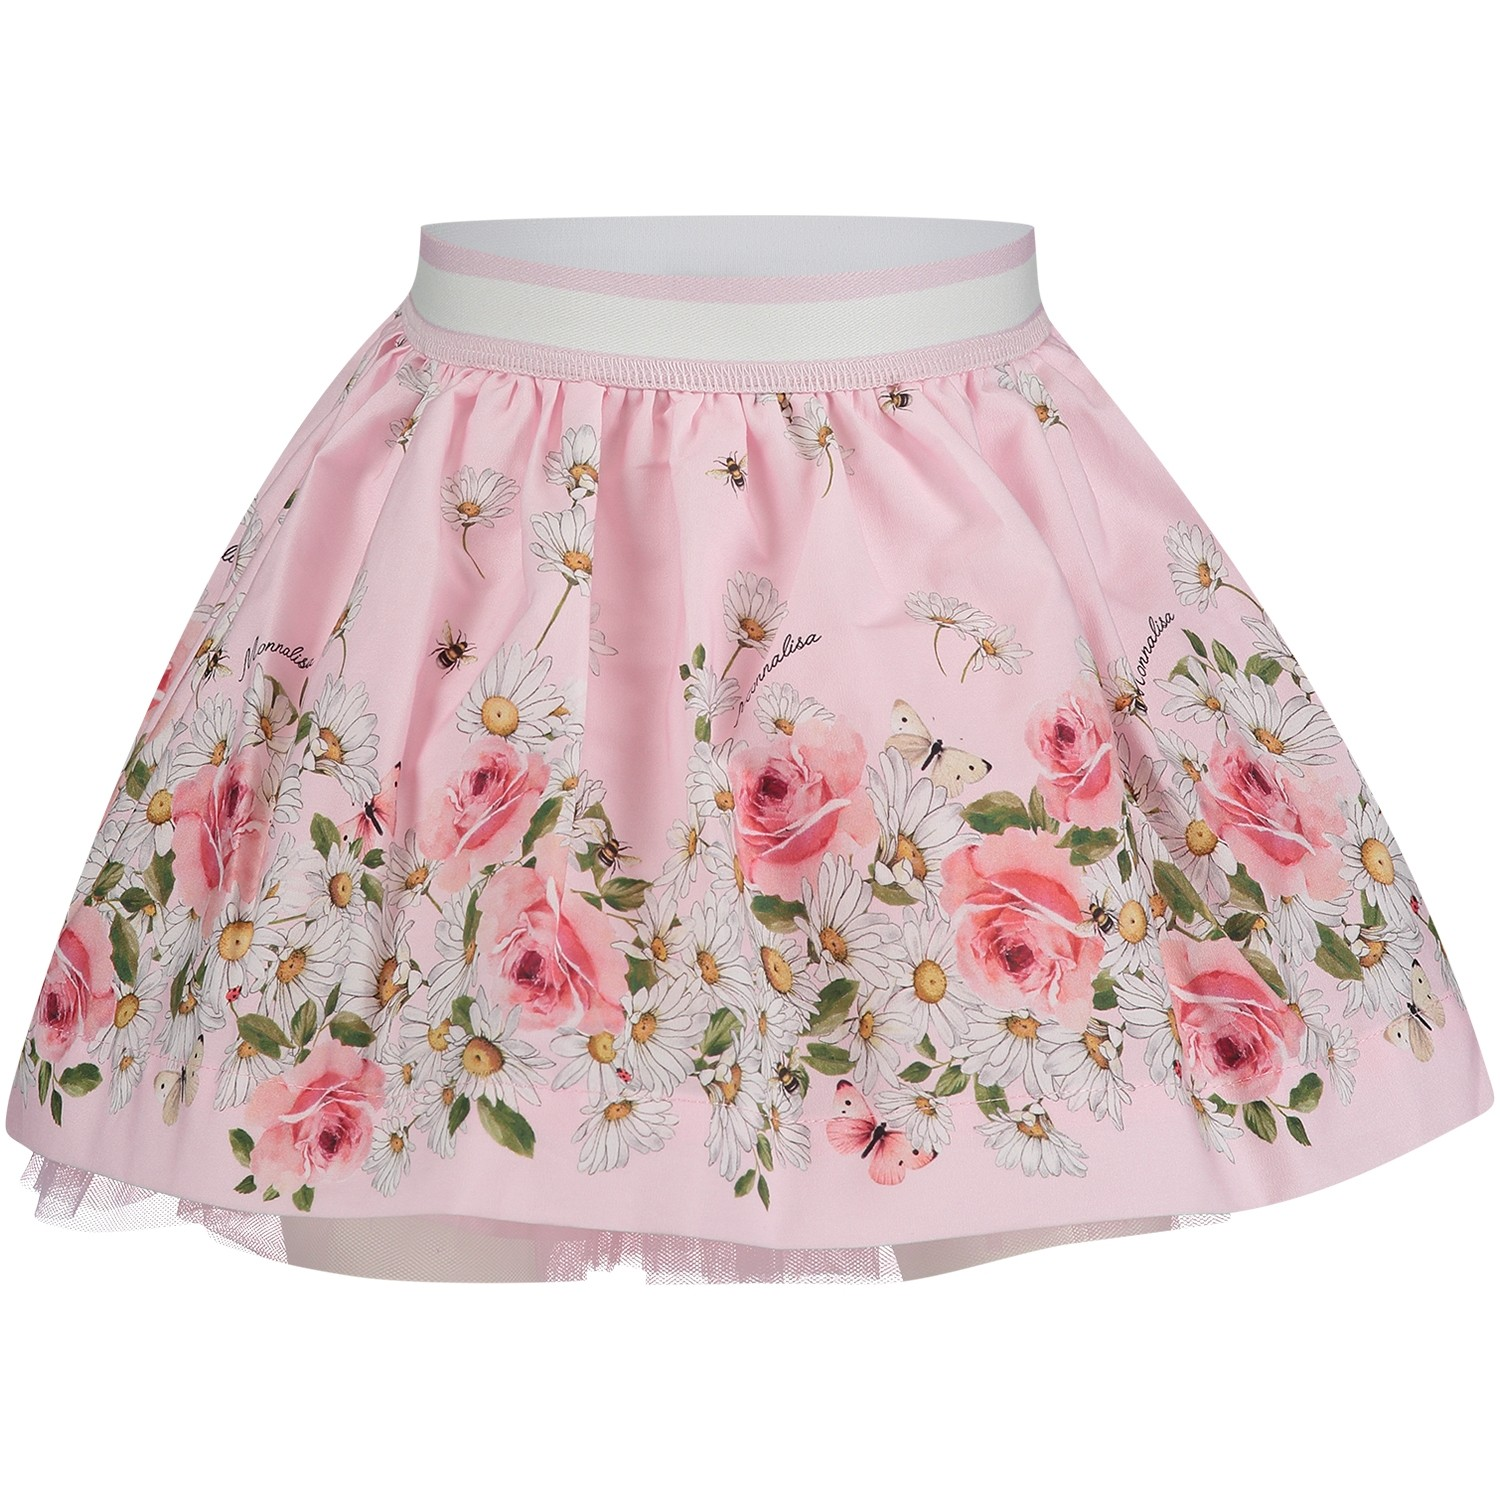 Picture of MonnaLisa 311703 baby skirt light pink